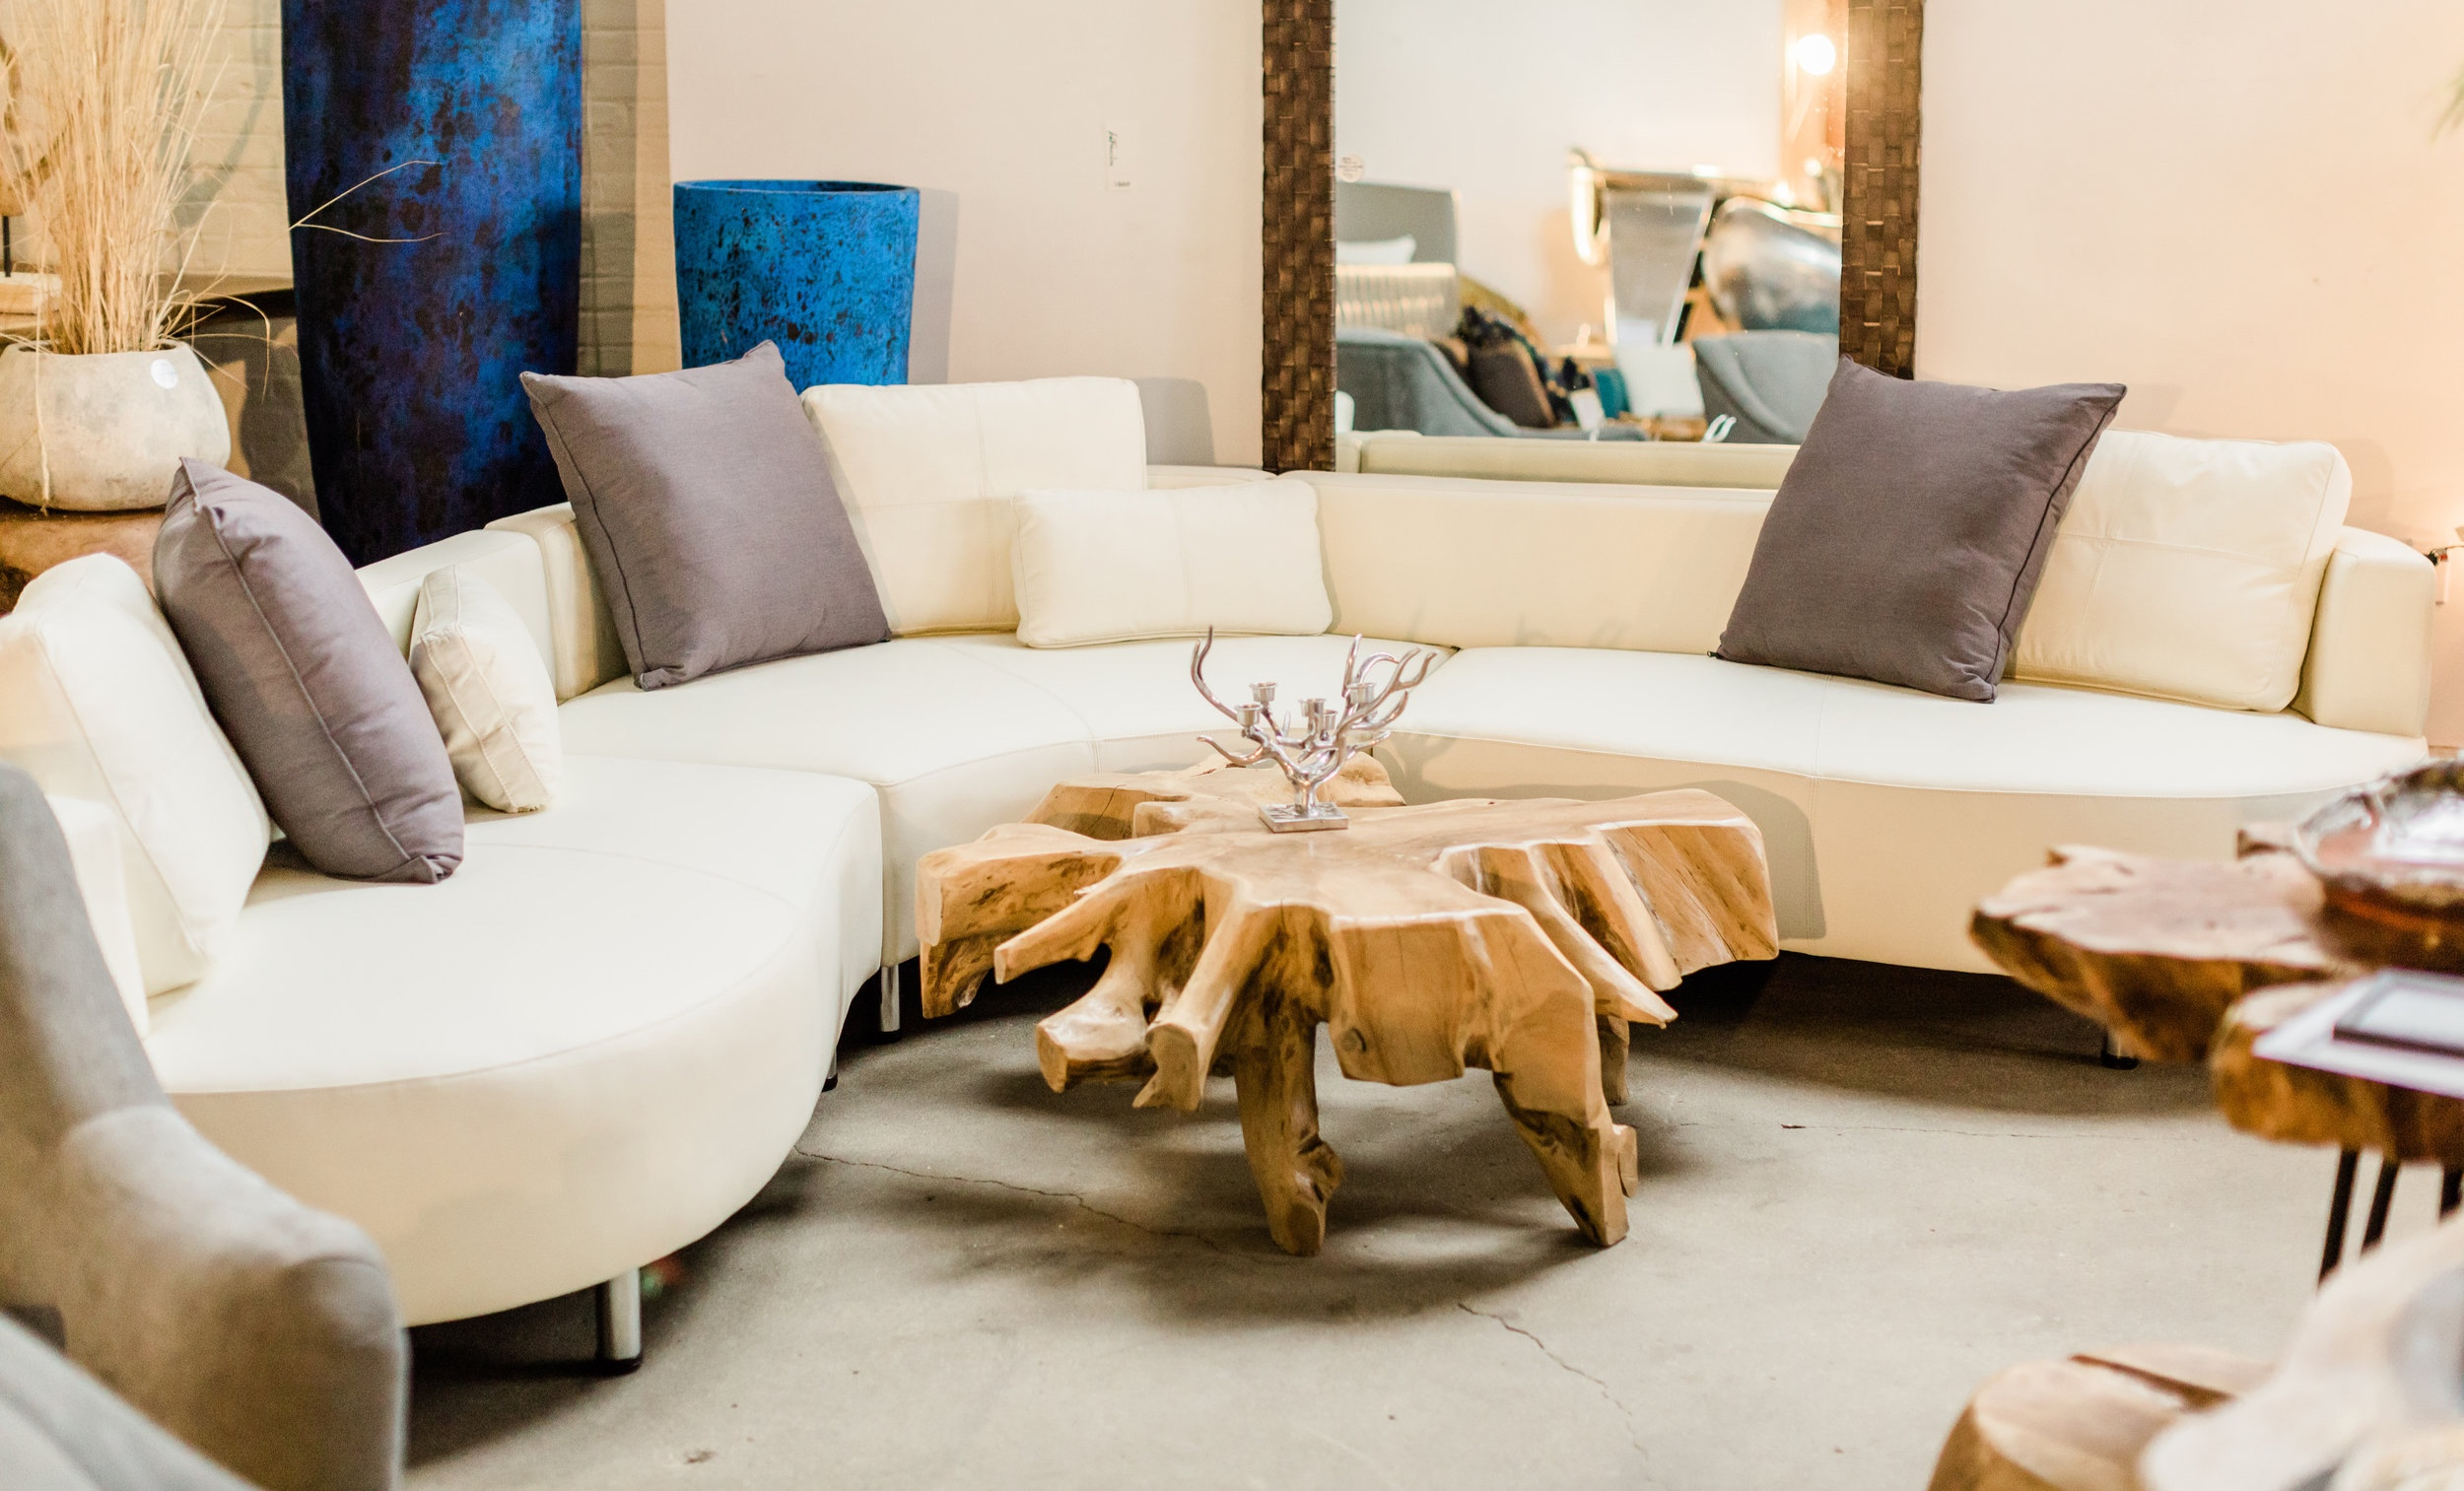 Copy of cocoon 2 sectional. Curvy, luxurious, modern designer furniture. Blue Moon Furniture store in Winnipeg.